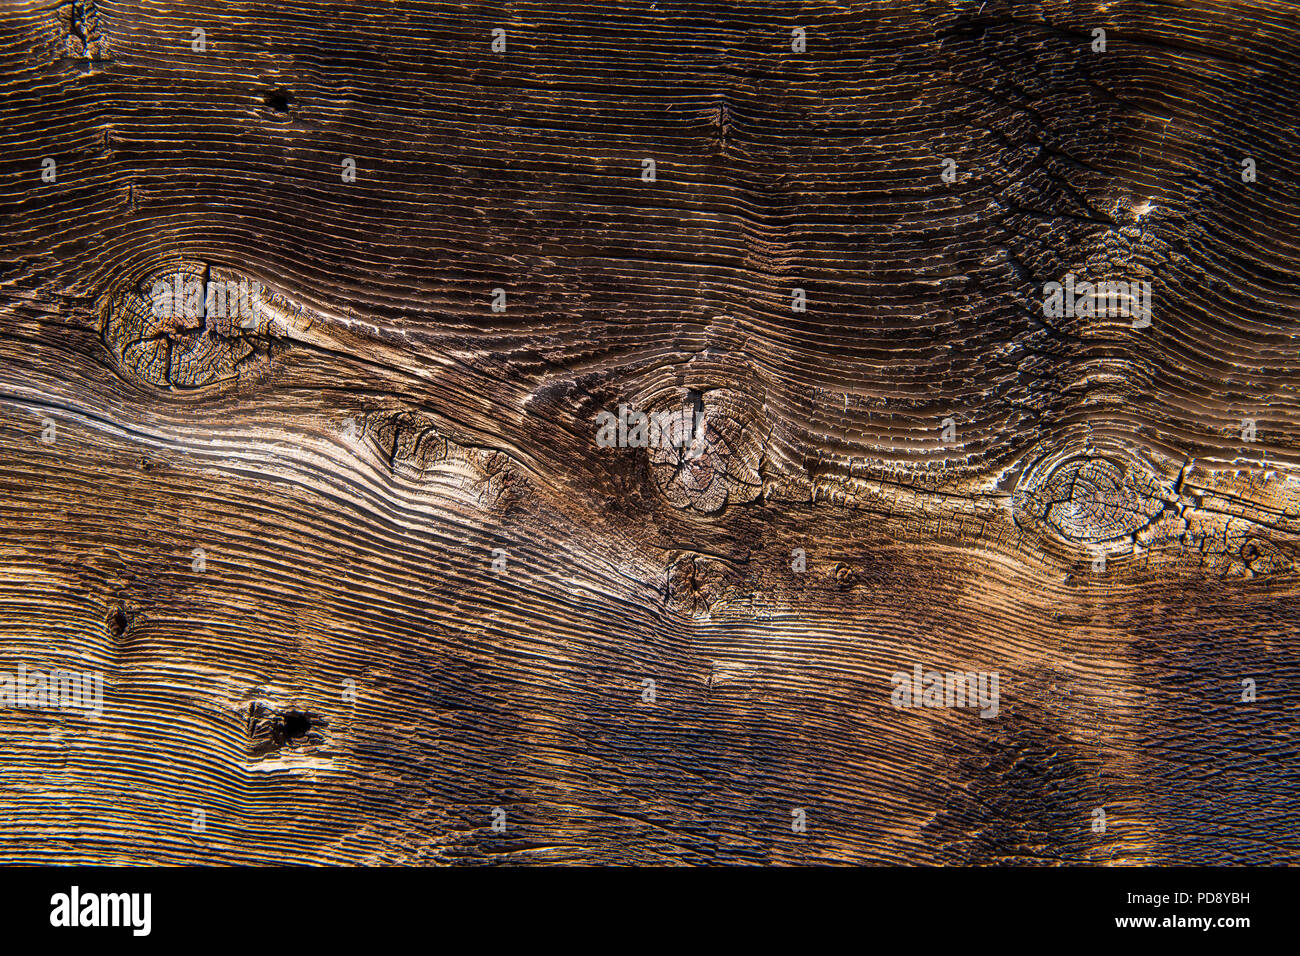 Close-up view of wood grain and wood knots background texture with warm brown color tones - Stock Image